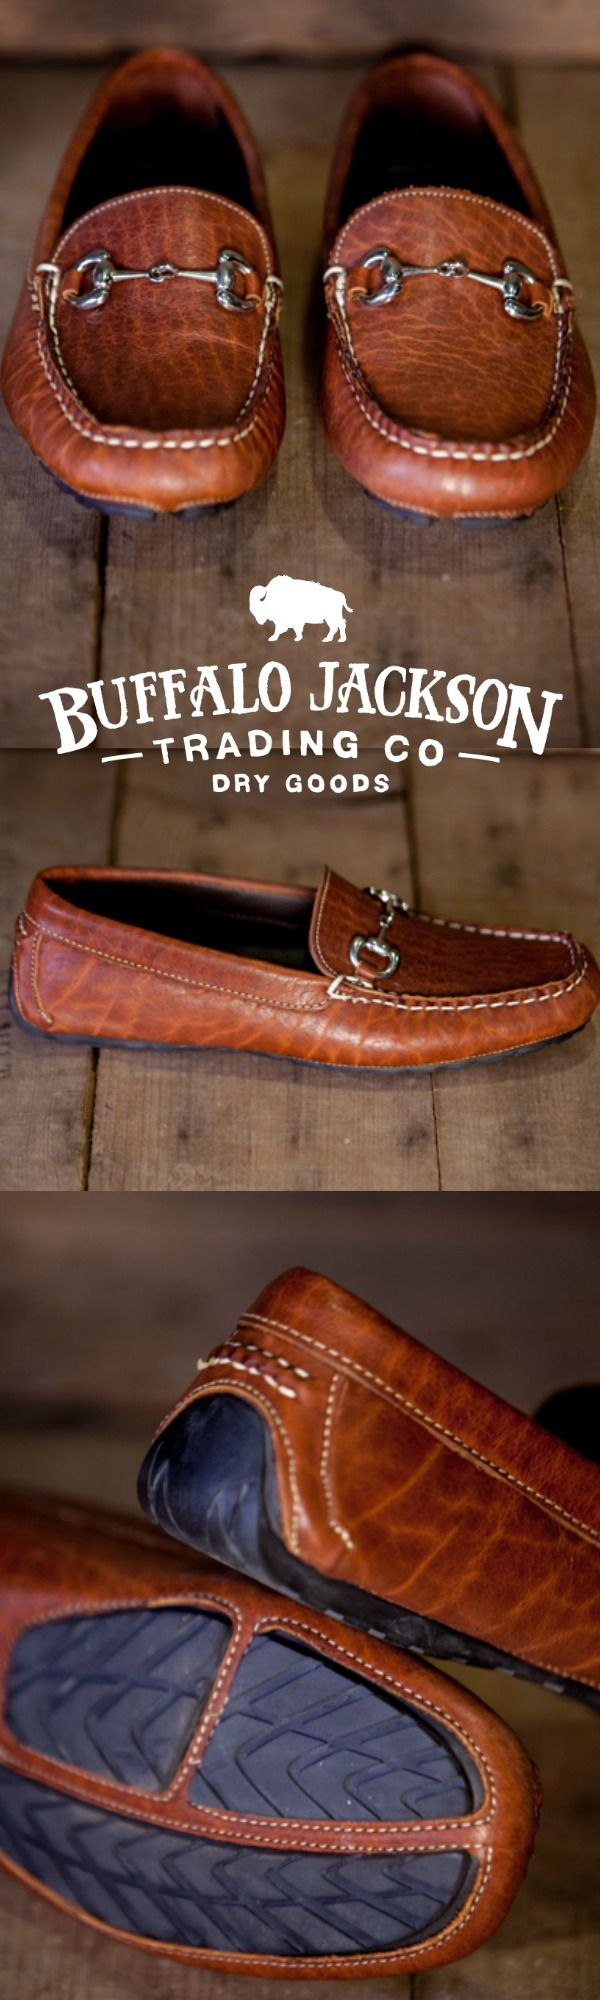 Laramie Menu0027s Bison Leather Horse Bit Loafers   Walnut